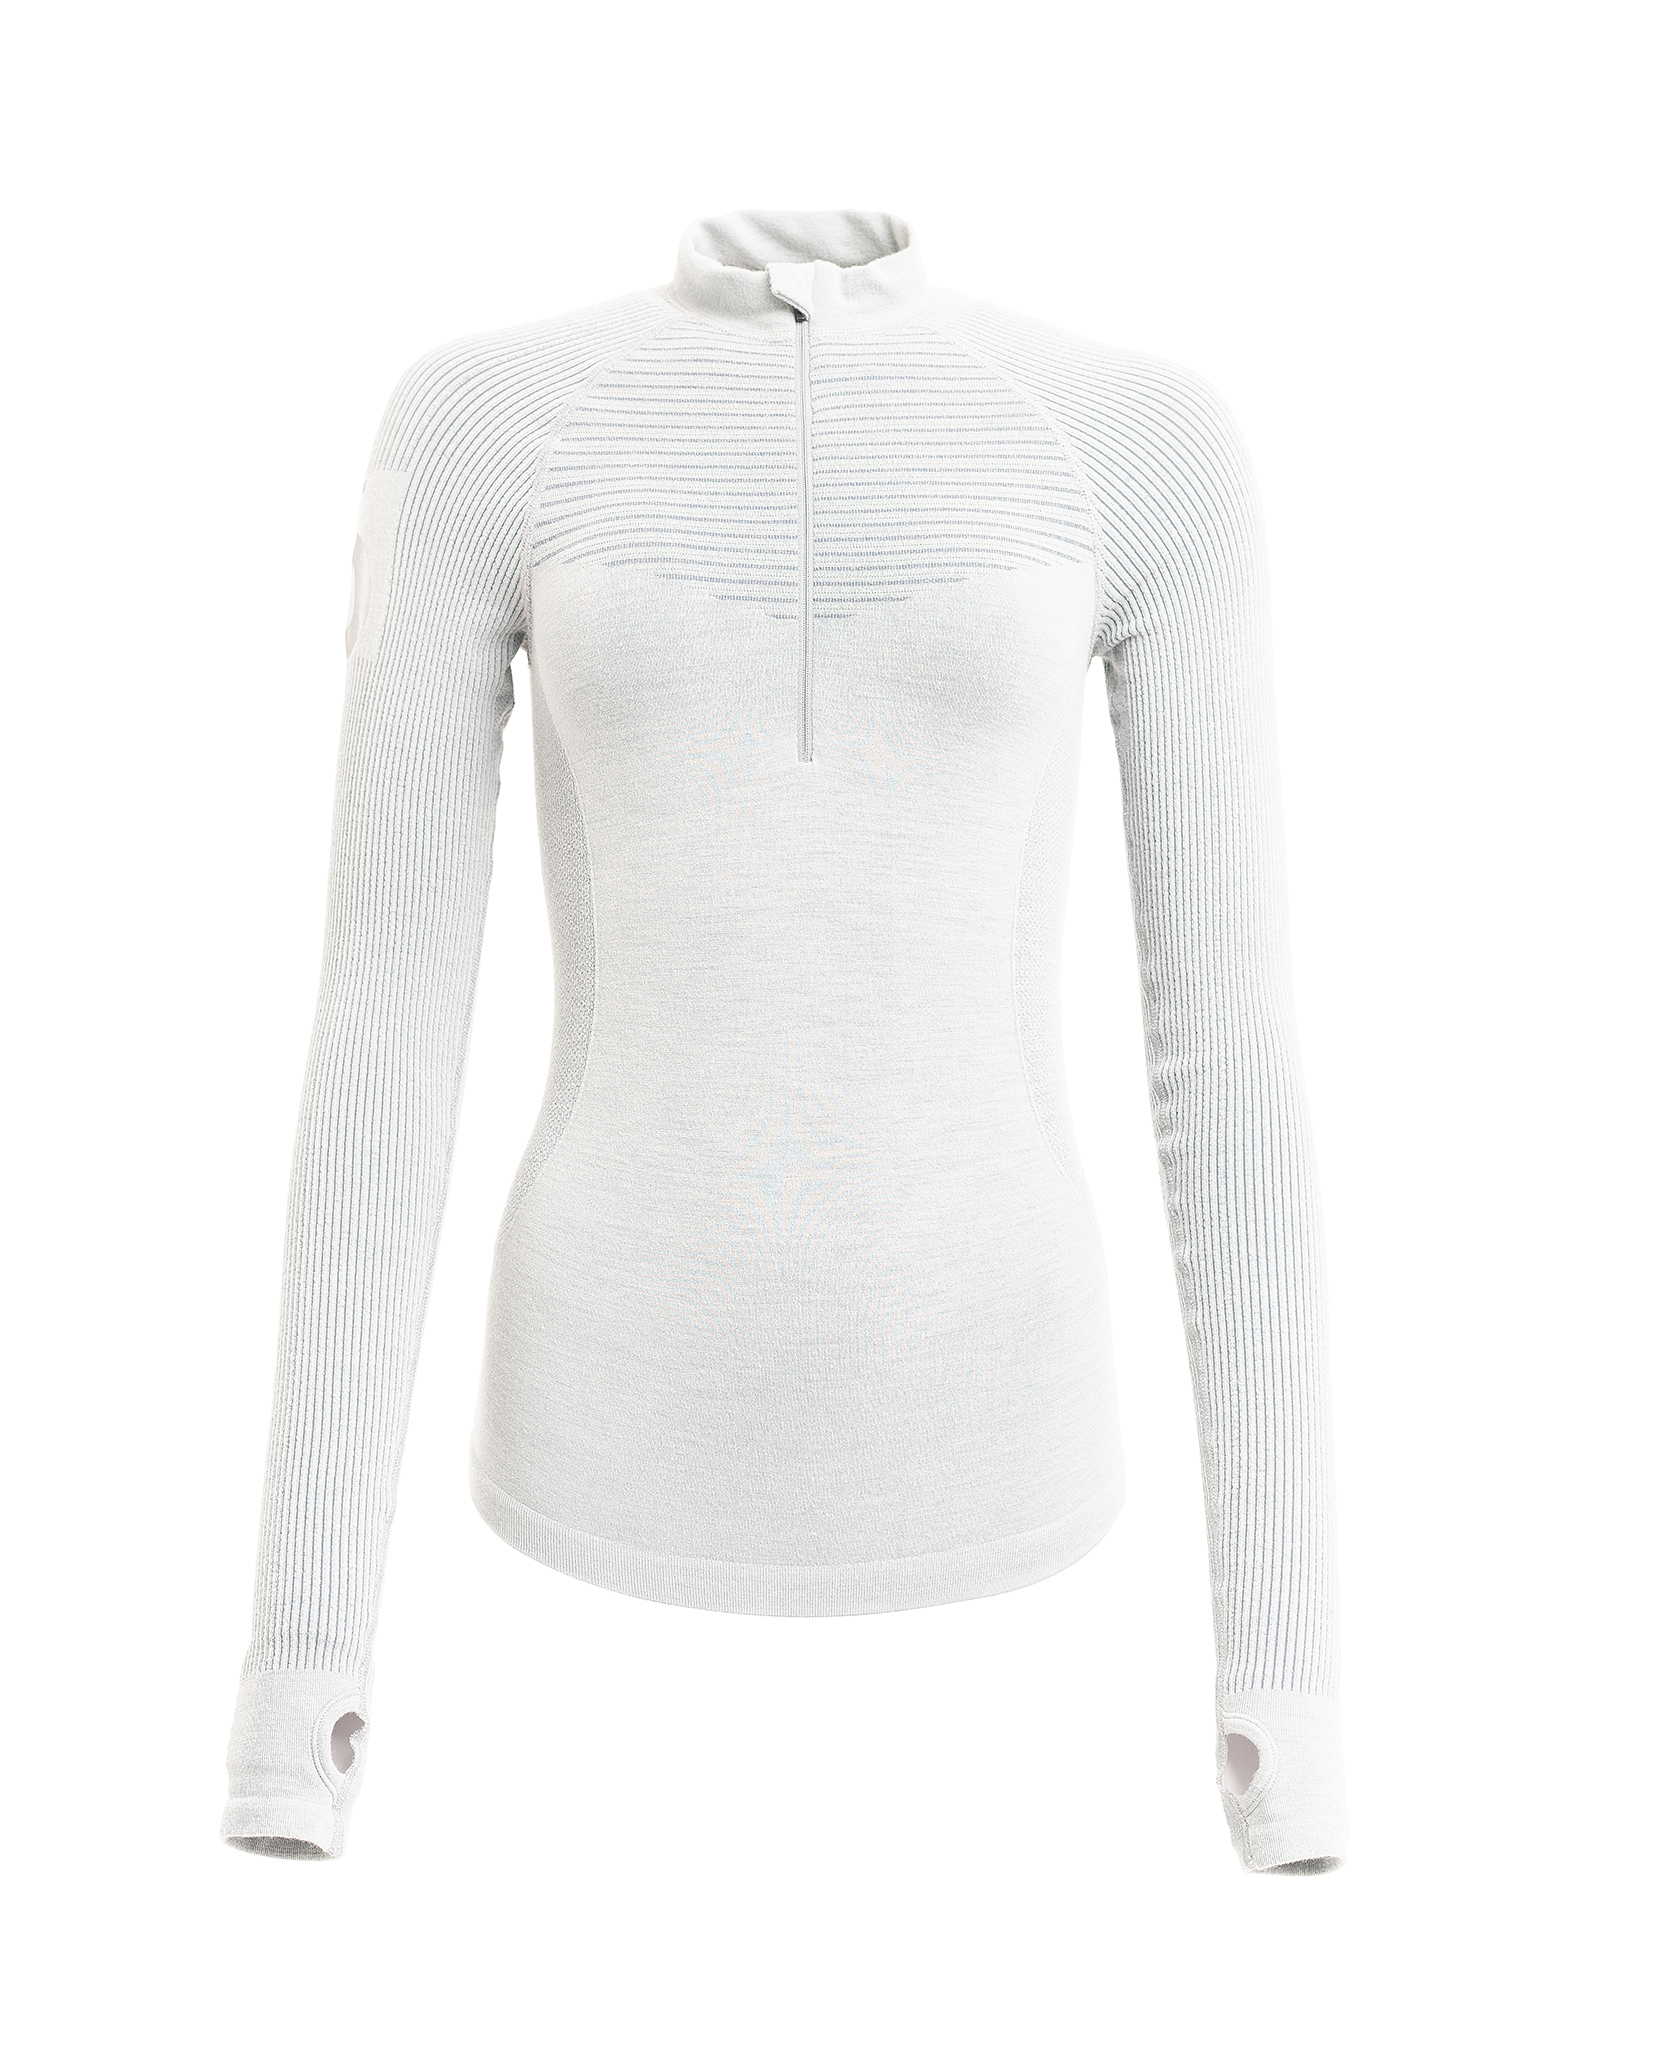 FLOA soft grey ski base layer